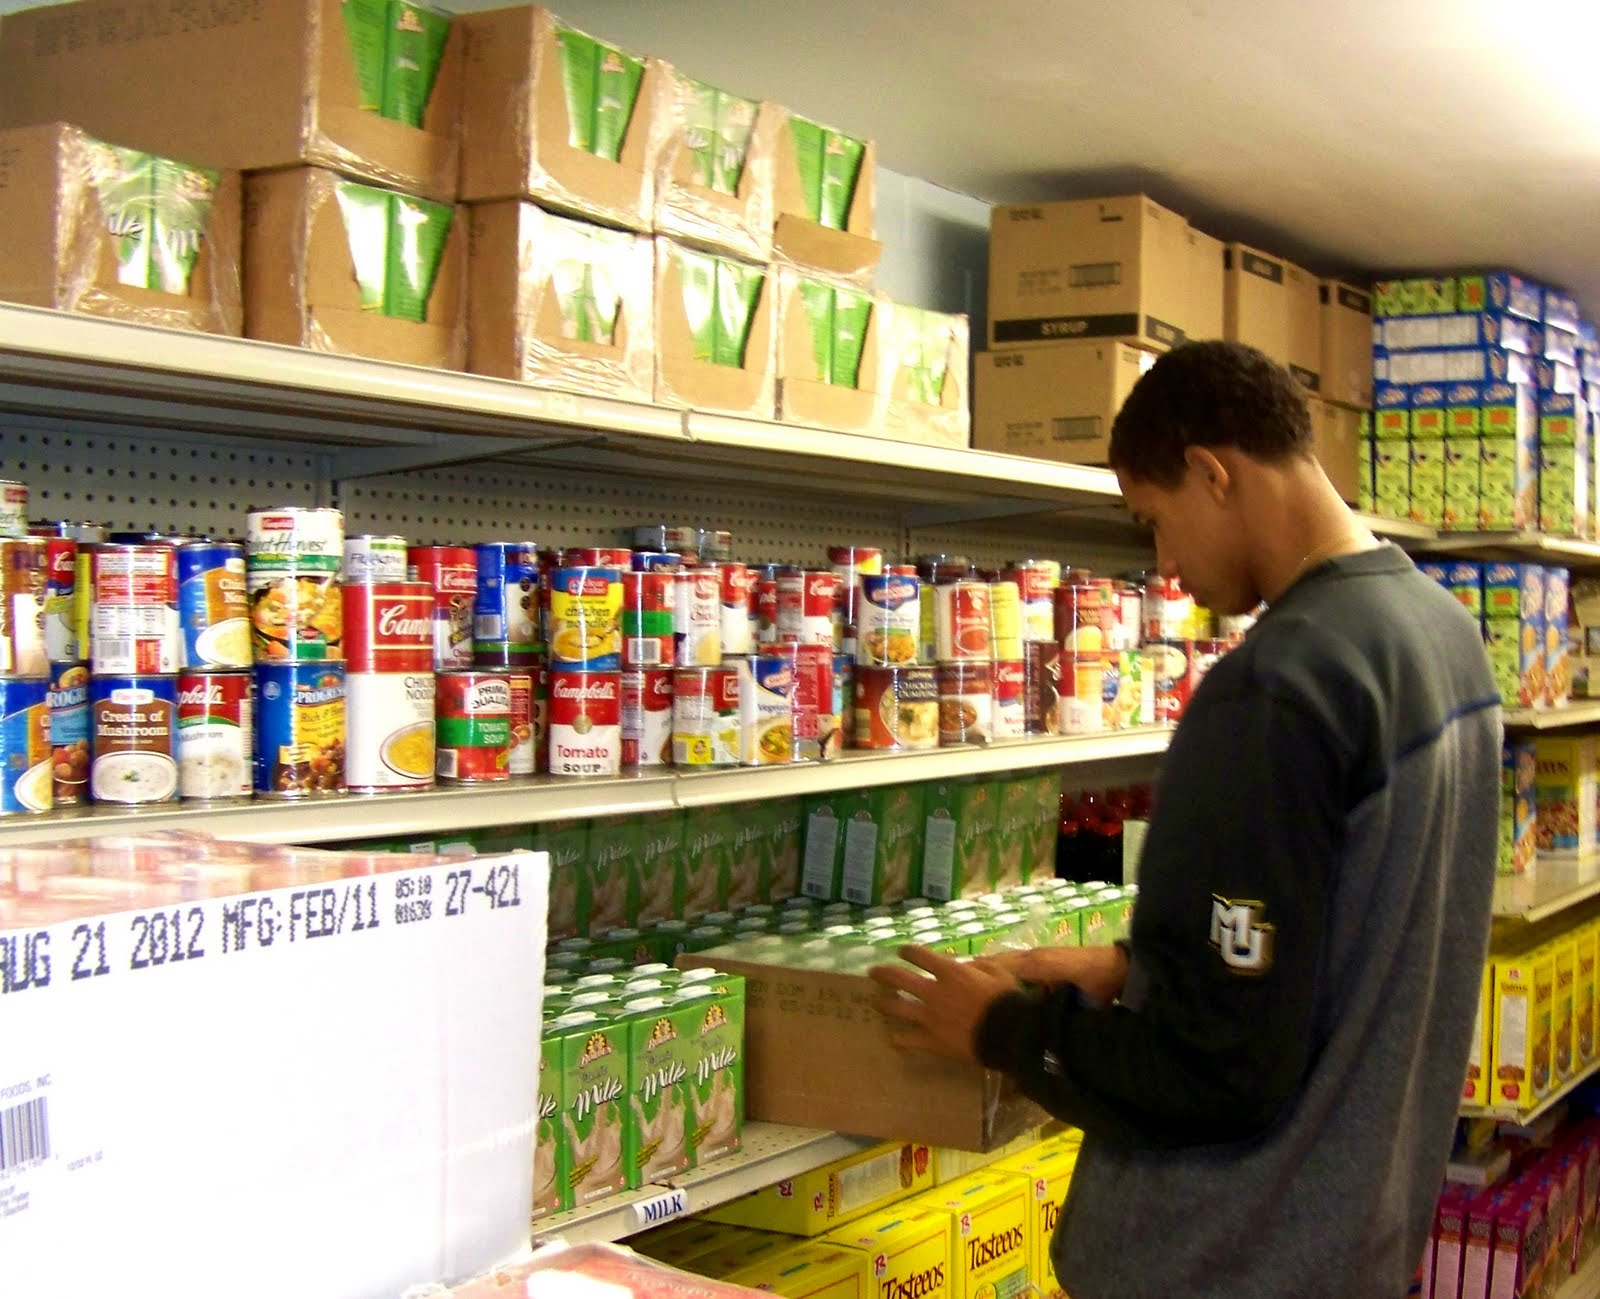 This Fall, Marquette Menu0027s Basketball Team Shared Their Off Court Skills In  Our Food Pantry. They Stocked And Organized Shelves, Passed Out Groceries  To ...